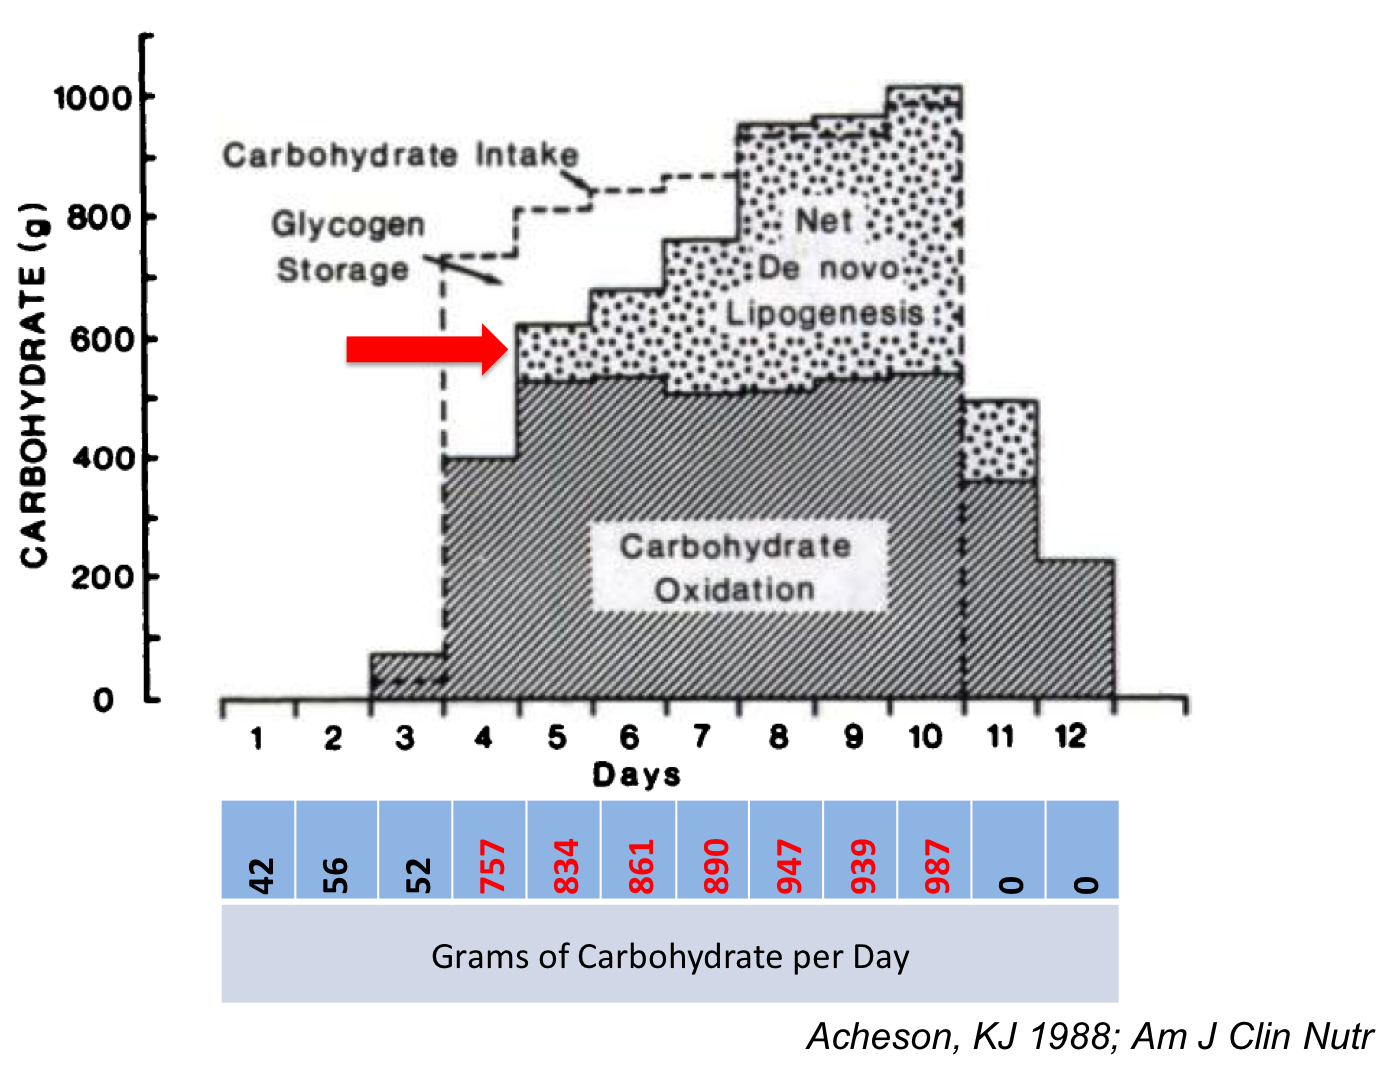 The effect of eating massive amounts of carbohydrate on fat (lipogenesis) and carbohydrate/glycogen storage